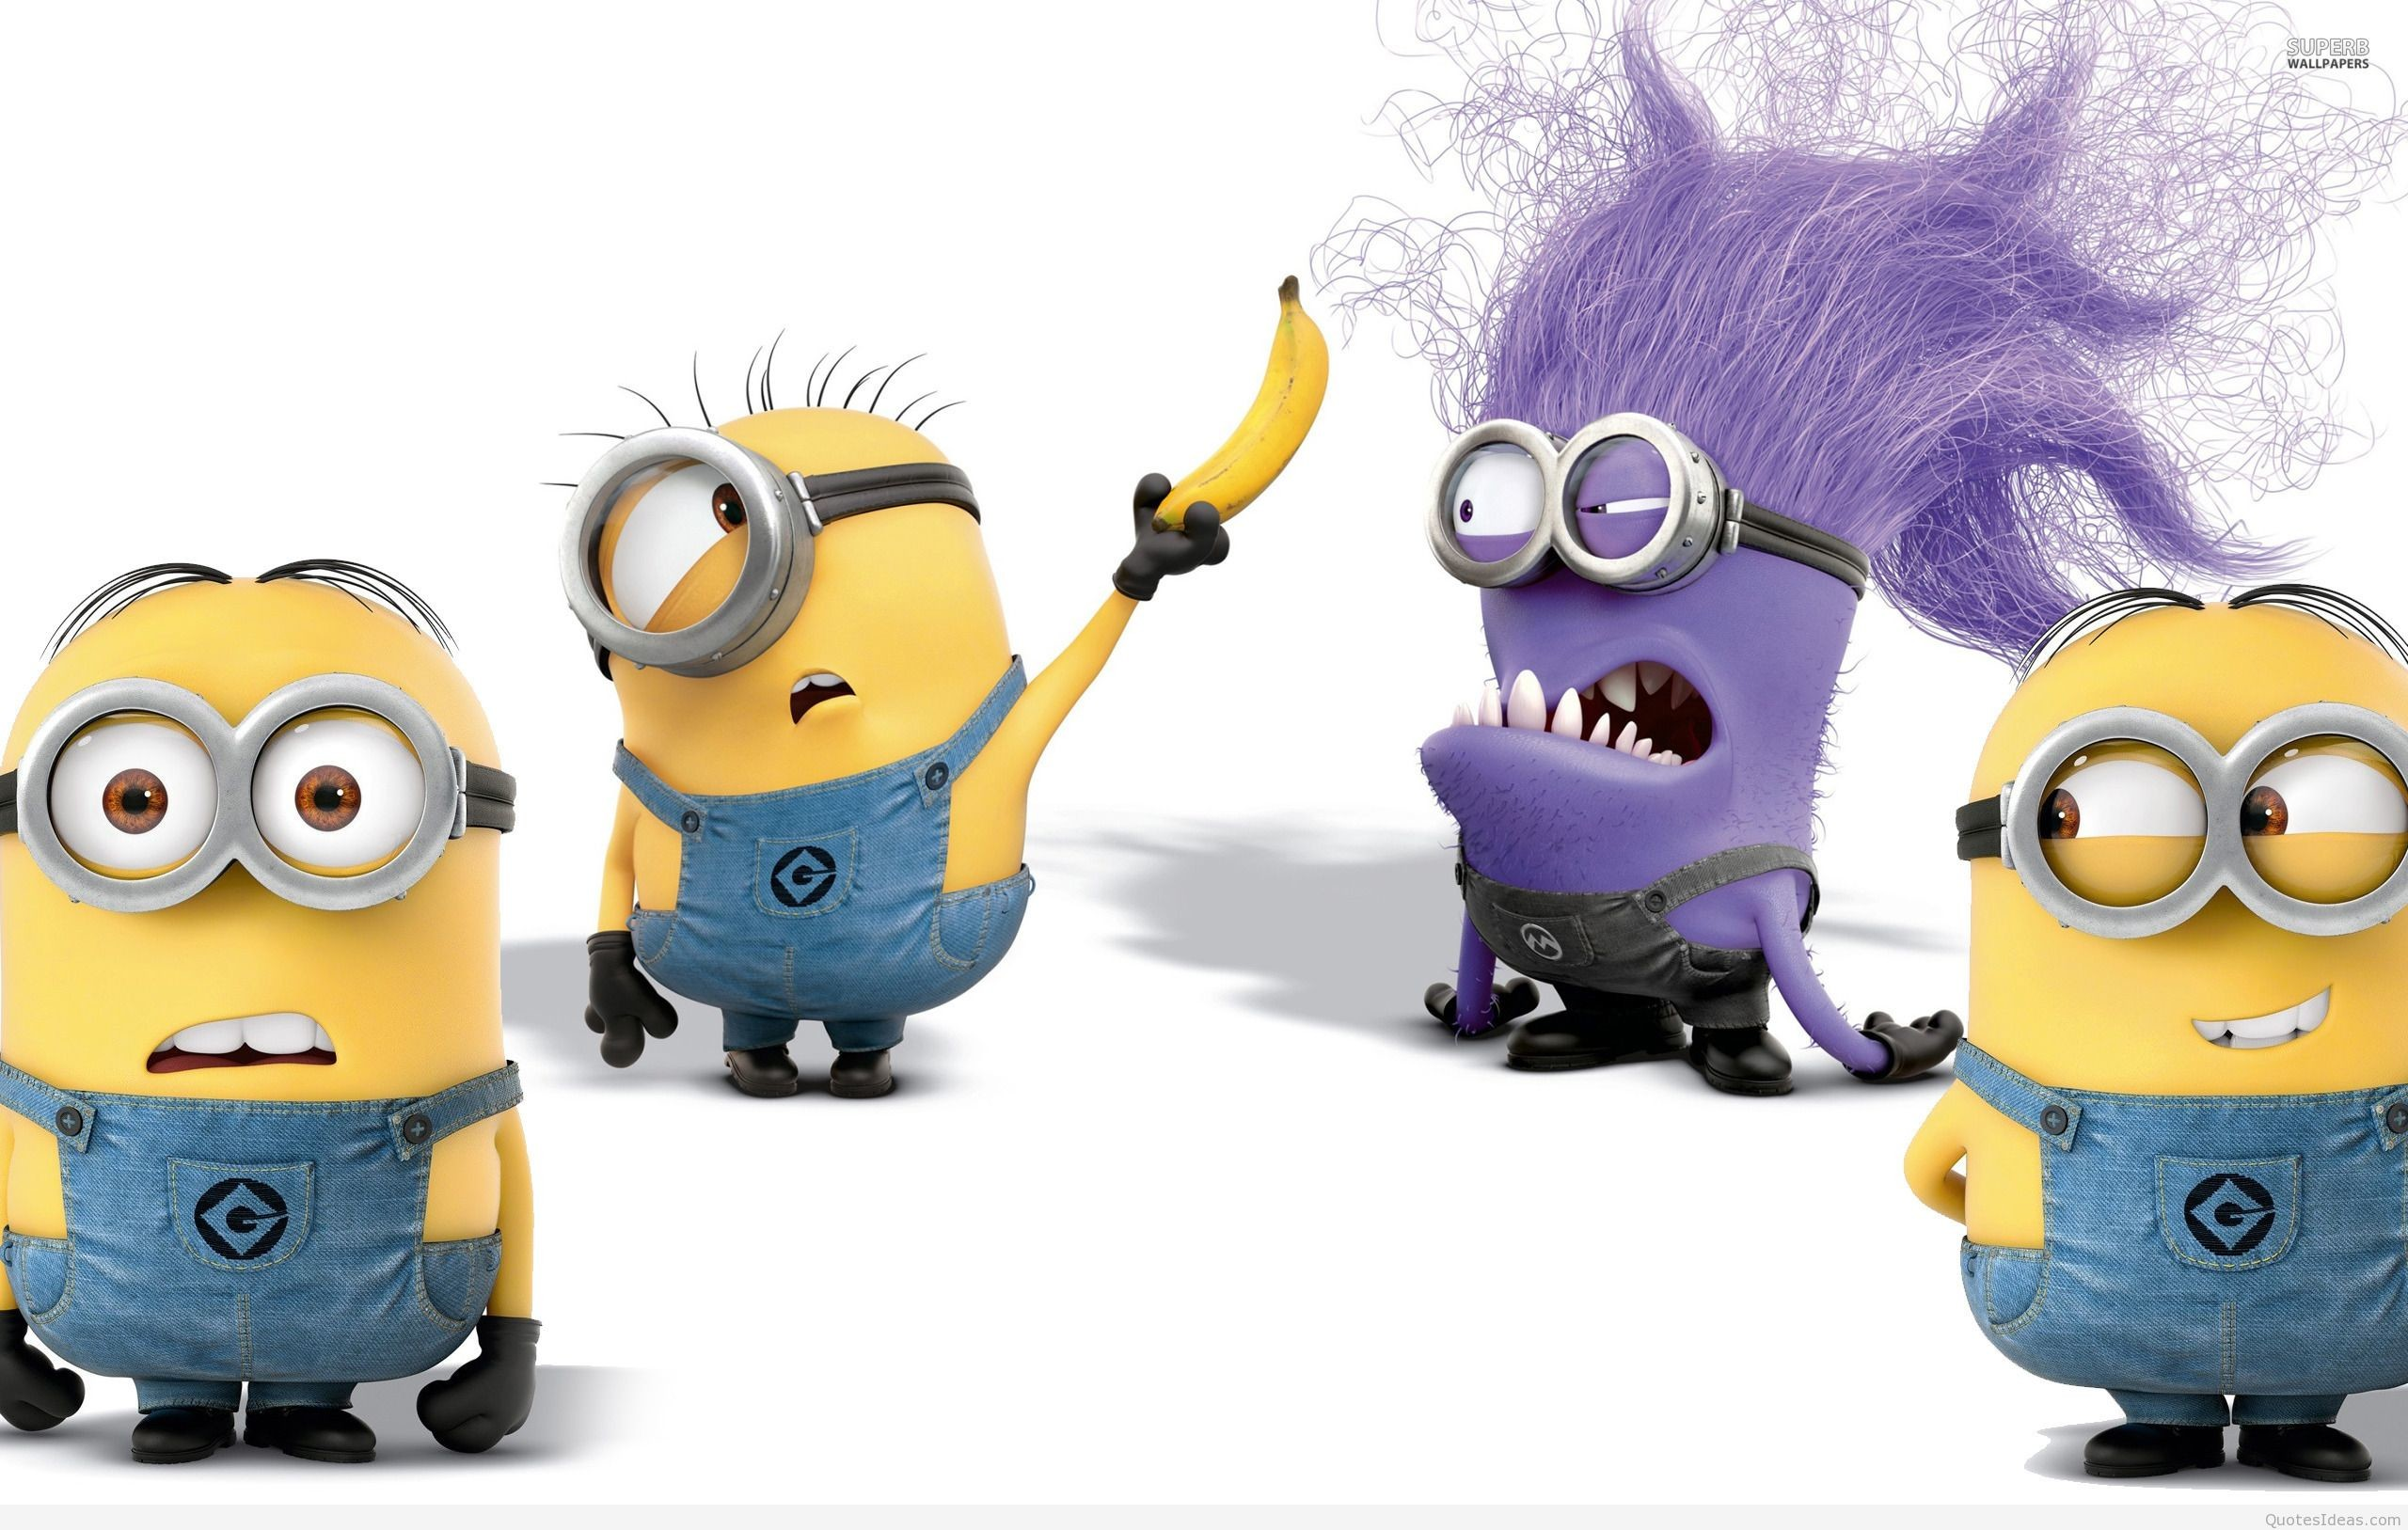 2560x1627 ... minions-despicable-me-2-wallpapers-funny-movie-images- ...